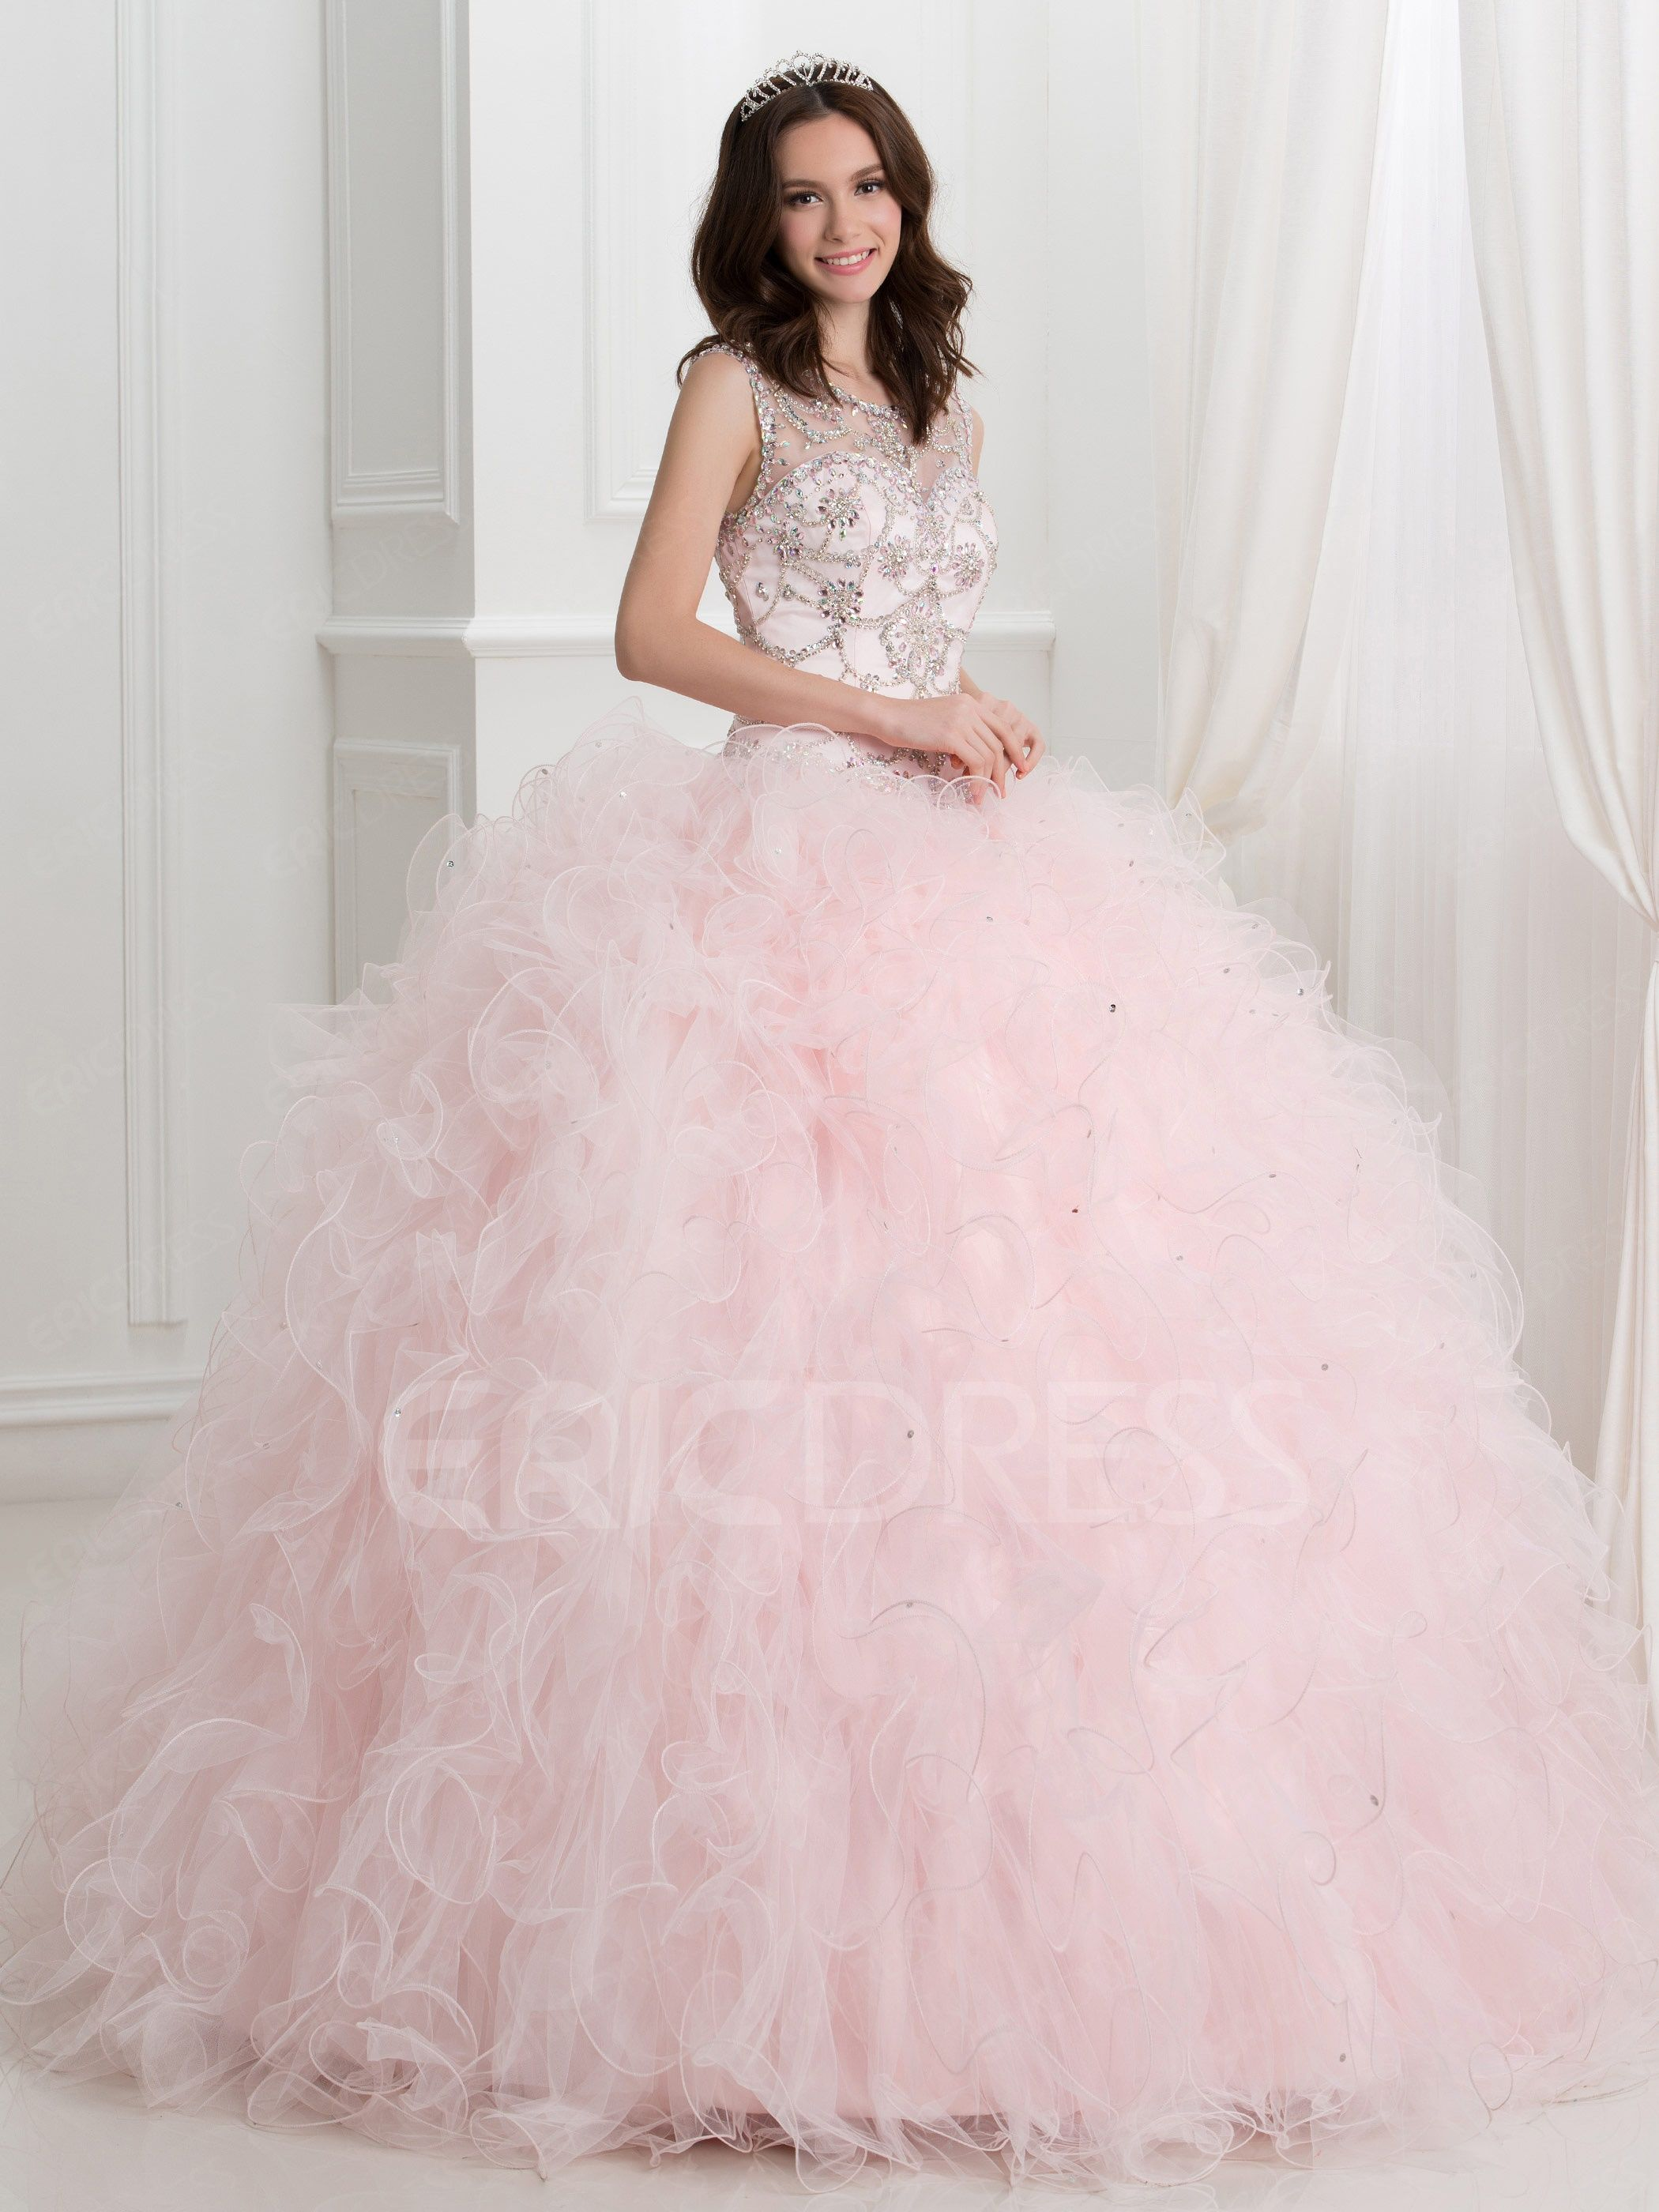 baf8ad97811a ericdress.com offers high quality Ericdress Jewel Neck Beading Open Back  Ball Gown Quinceanera Dress Quinceanera Dresses unit price of $ 188.31.